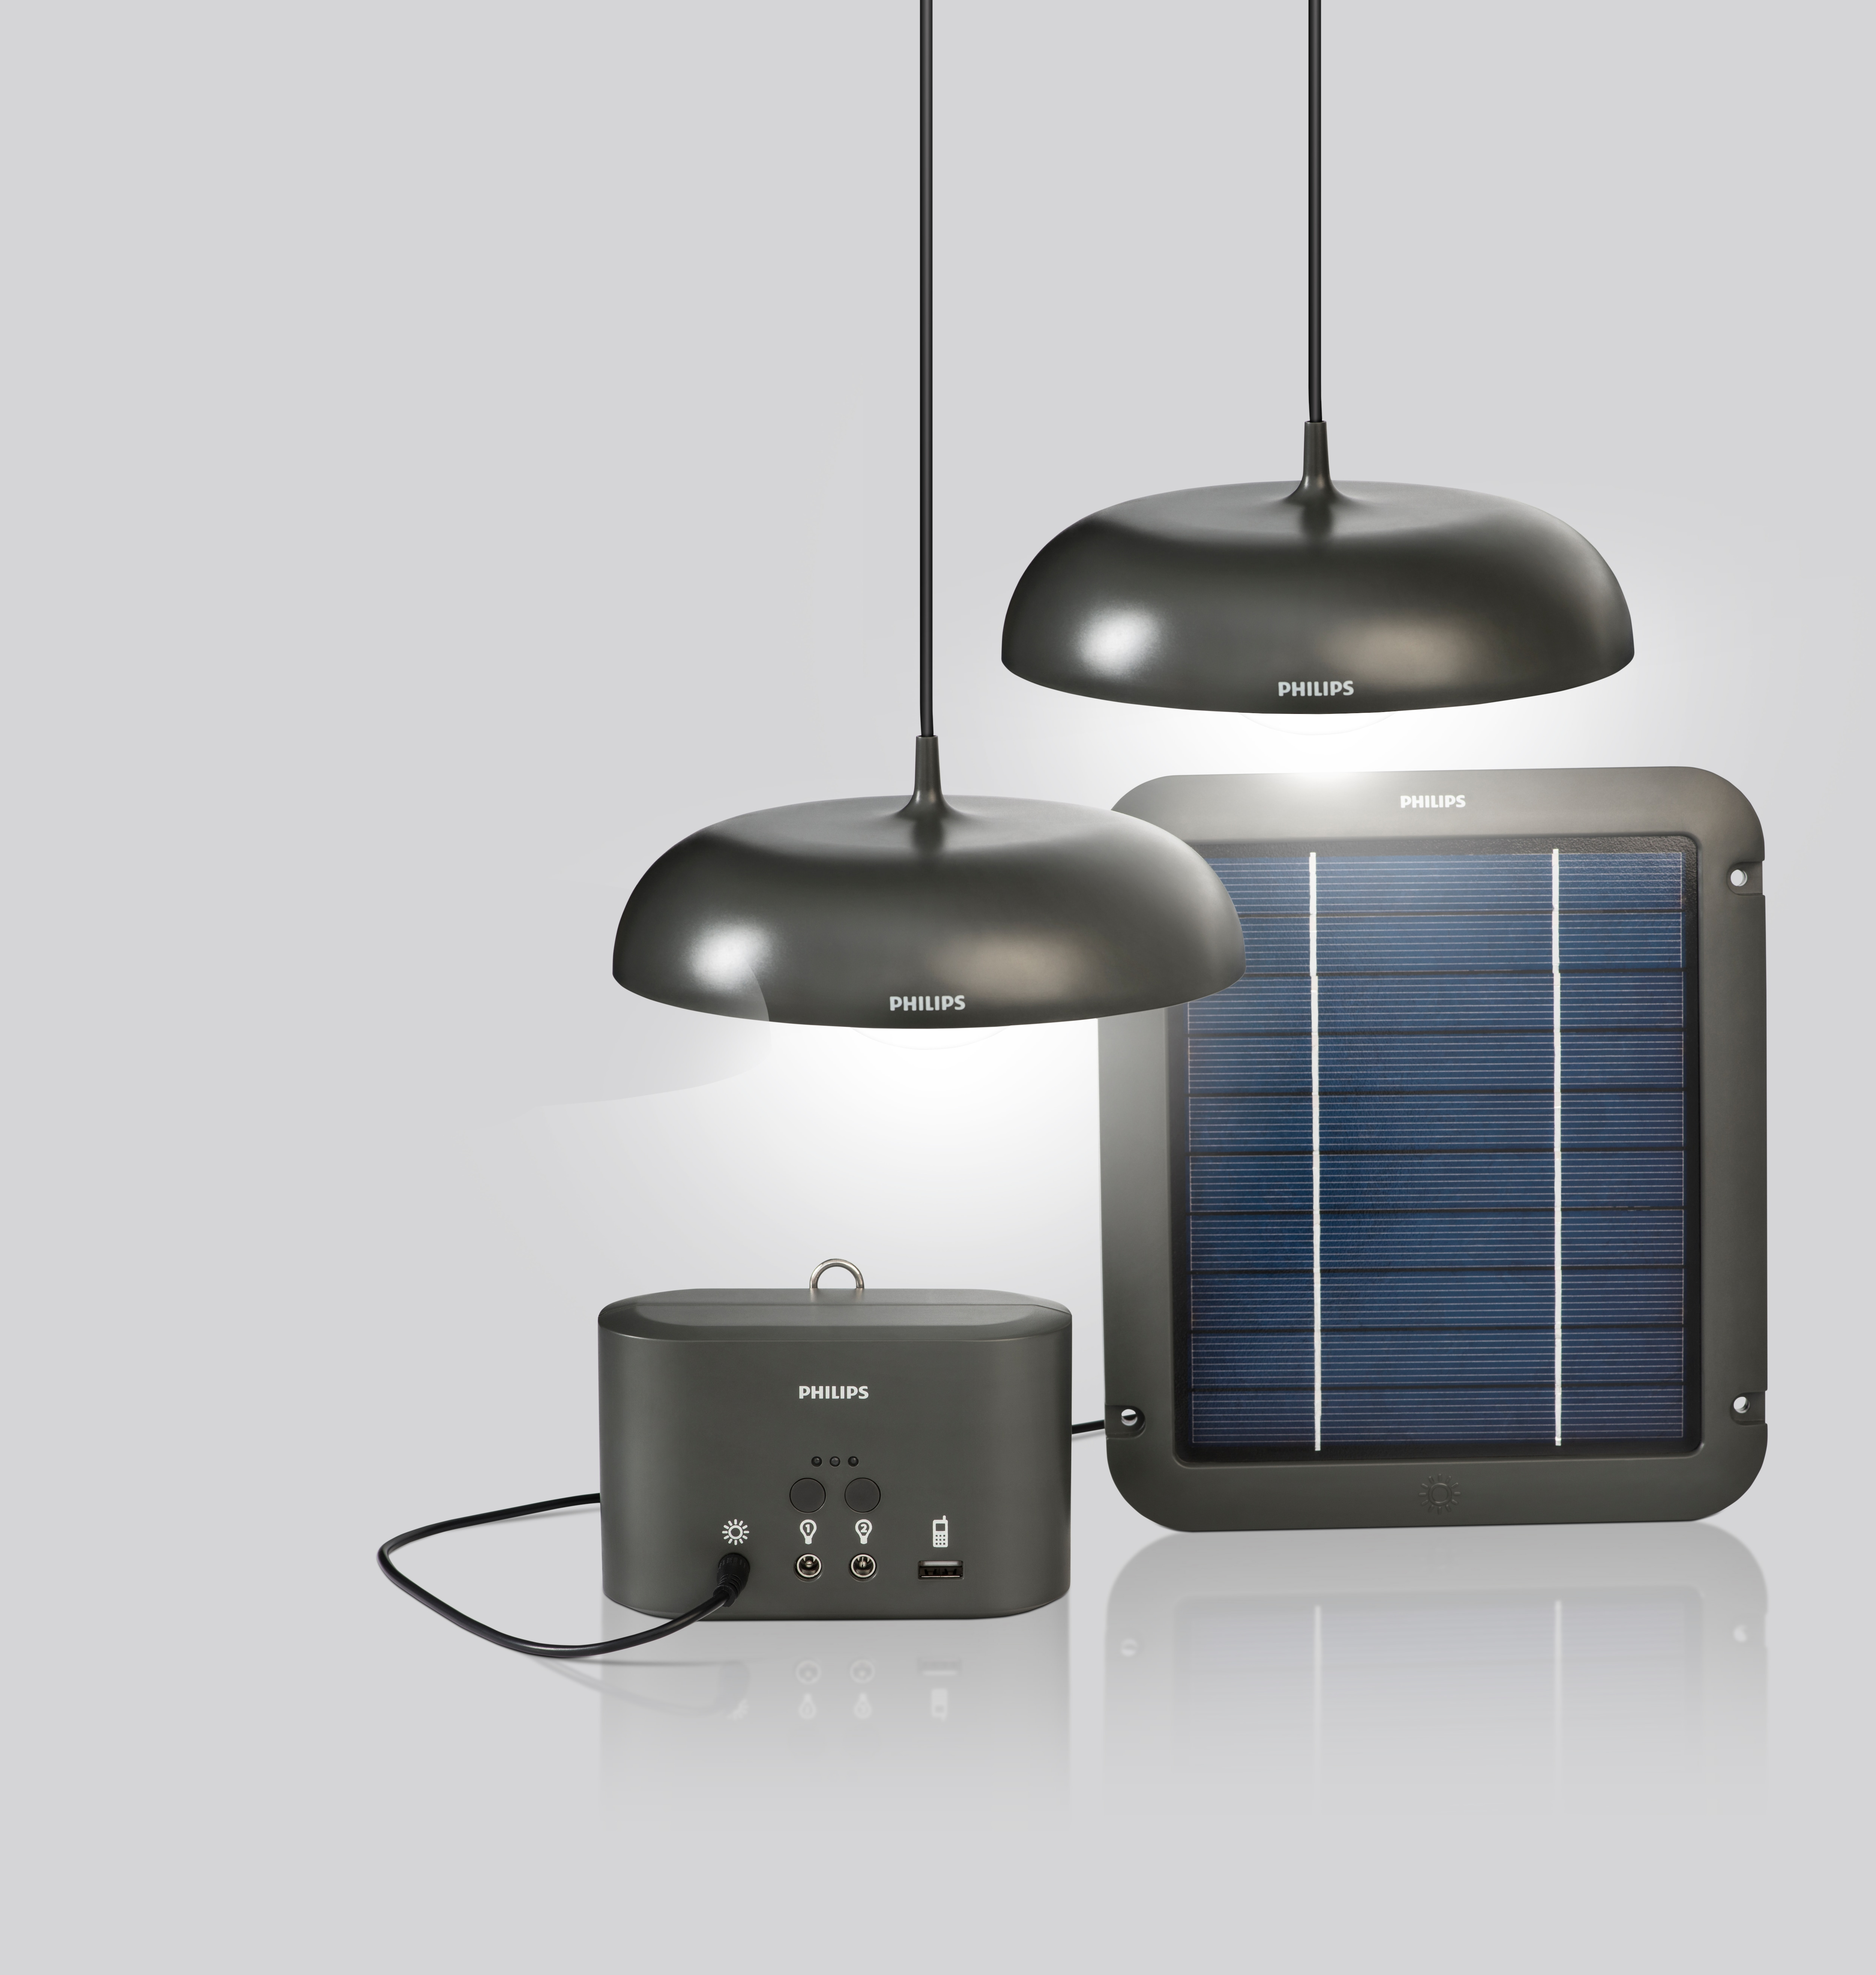 Philips Solar Wall Lights : Solar-powered LED luminaires from Philips can brighten the homes of millions